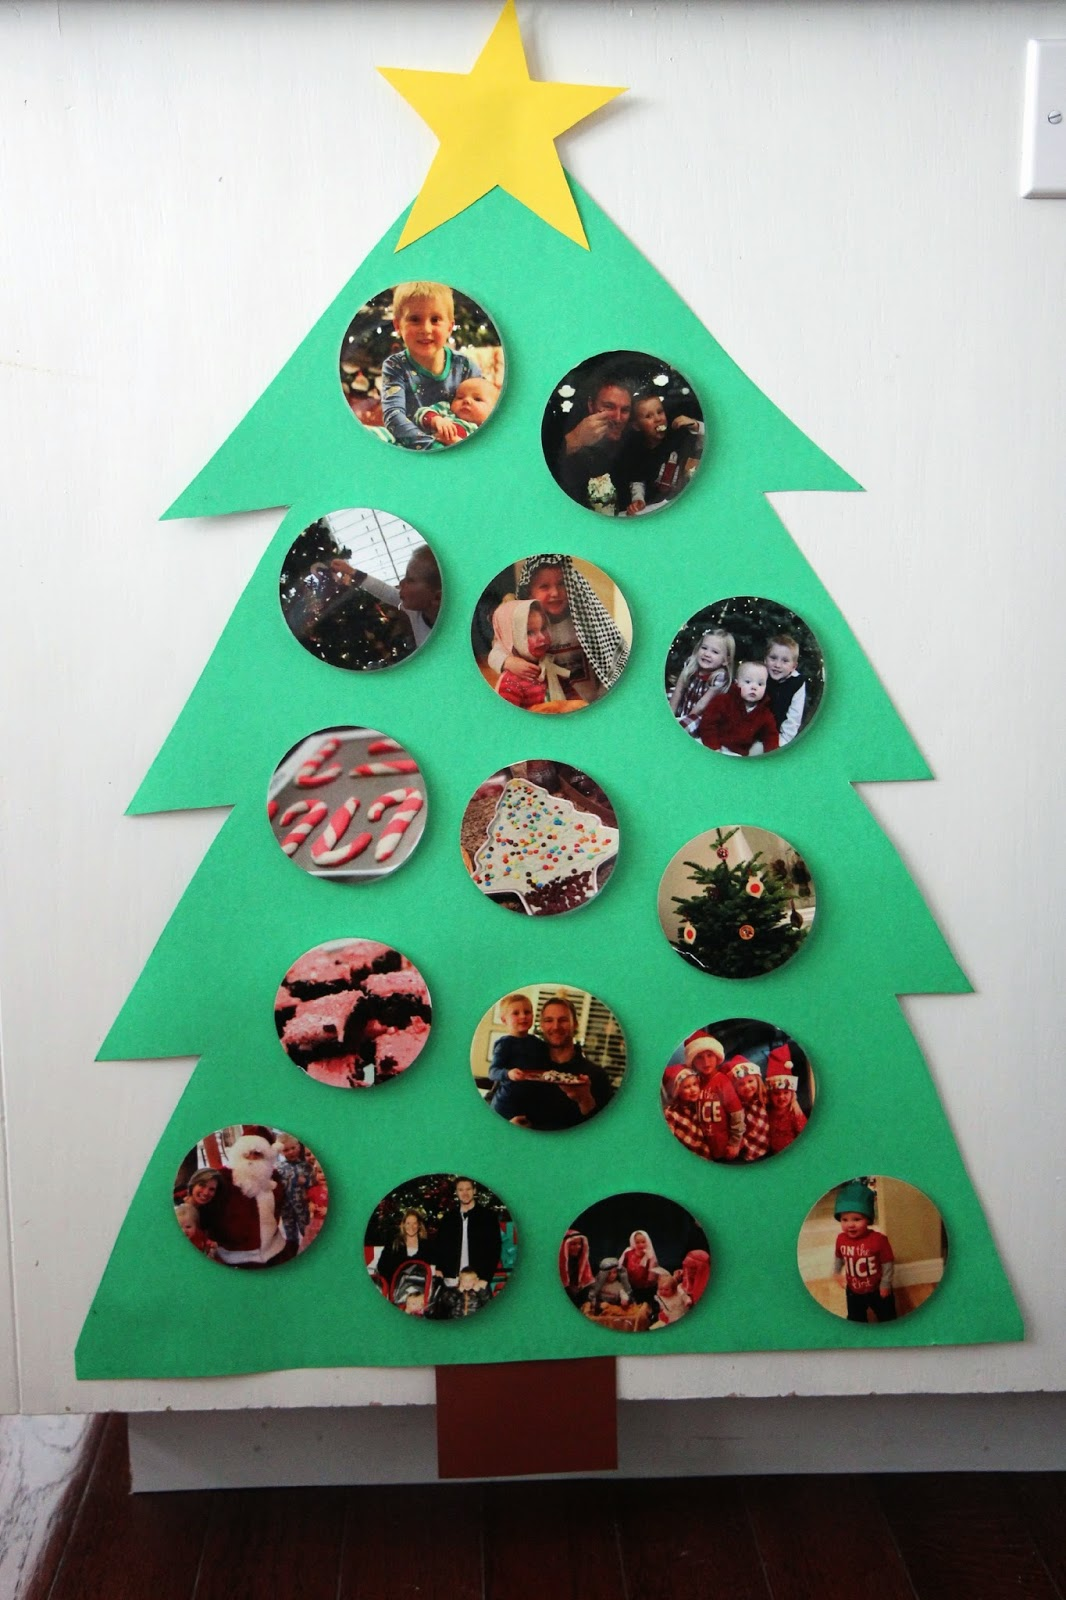 Weihnachtsbasteln Krippenkinder Toddler Approved Build A Photo Christmas Tree For Babies